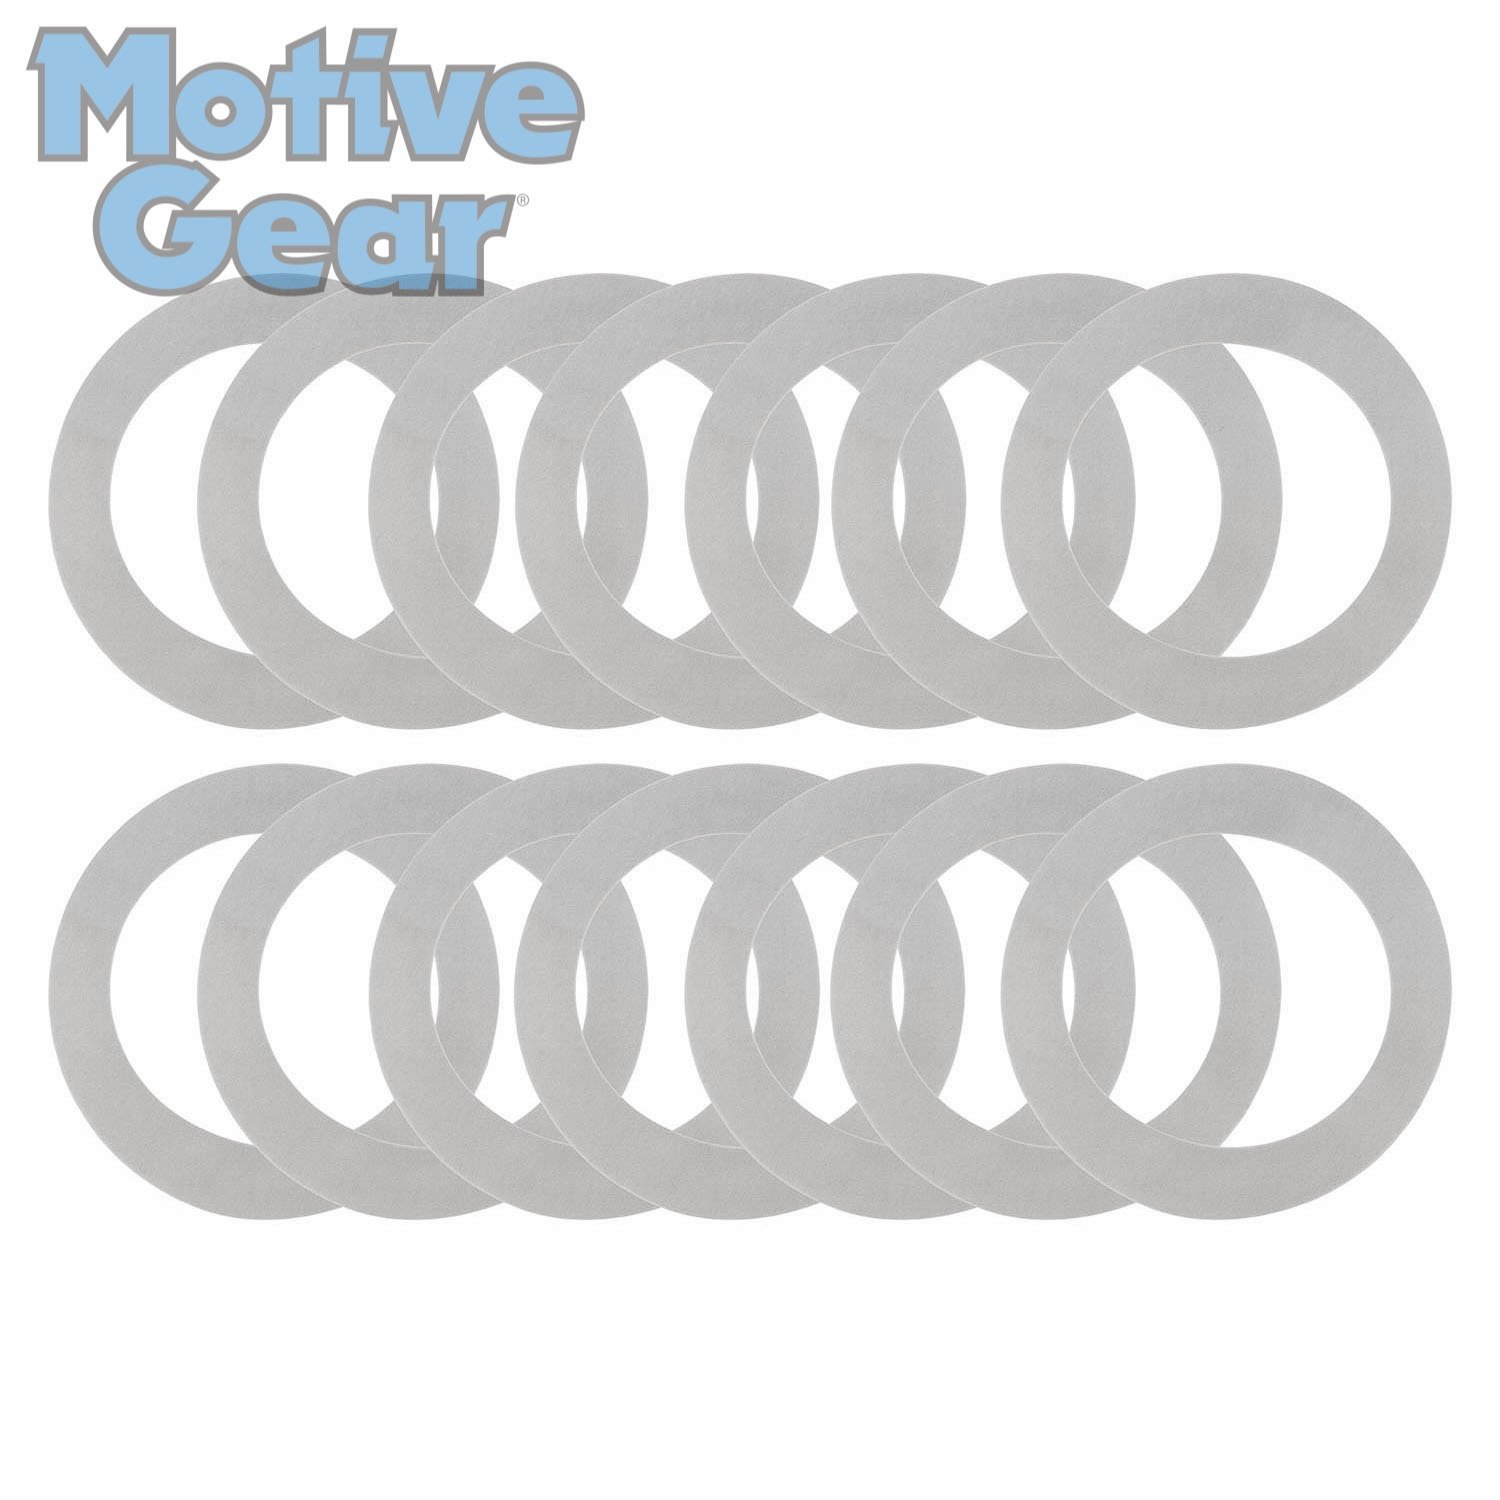 Motive Gear 1101 Carrier Shim Kit Motive Gear Performance Differential